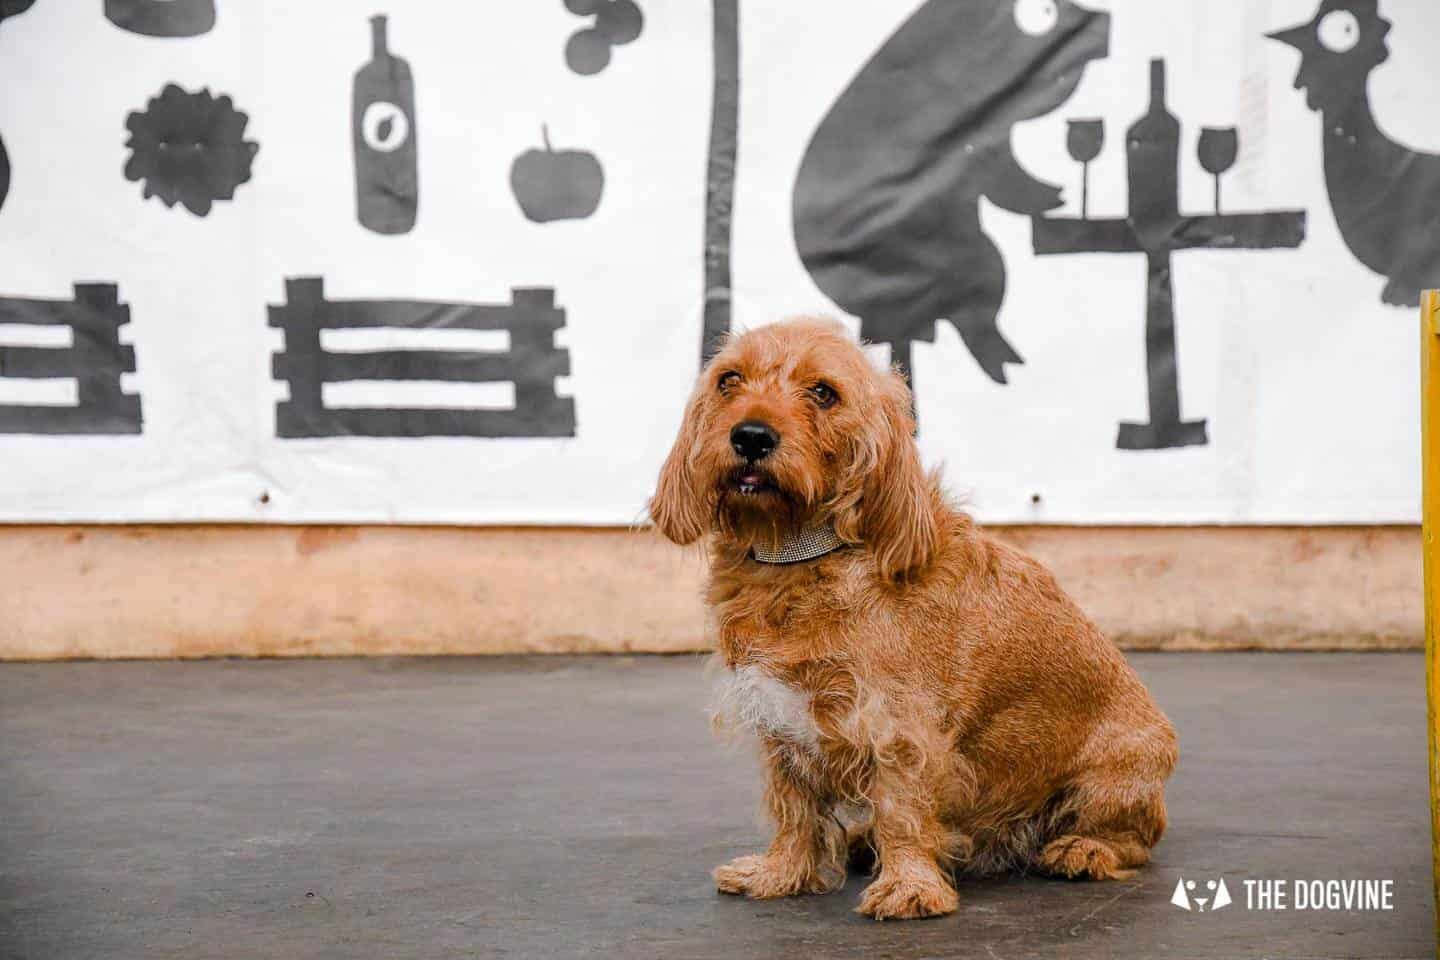 My Dog Friendly London By Amber The Basset Fauve De Bretagne - Mercato Metropolitano 3